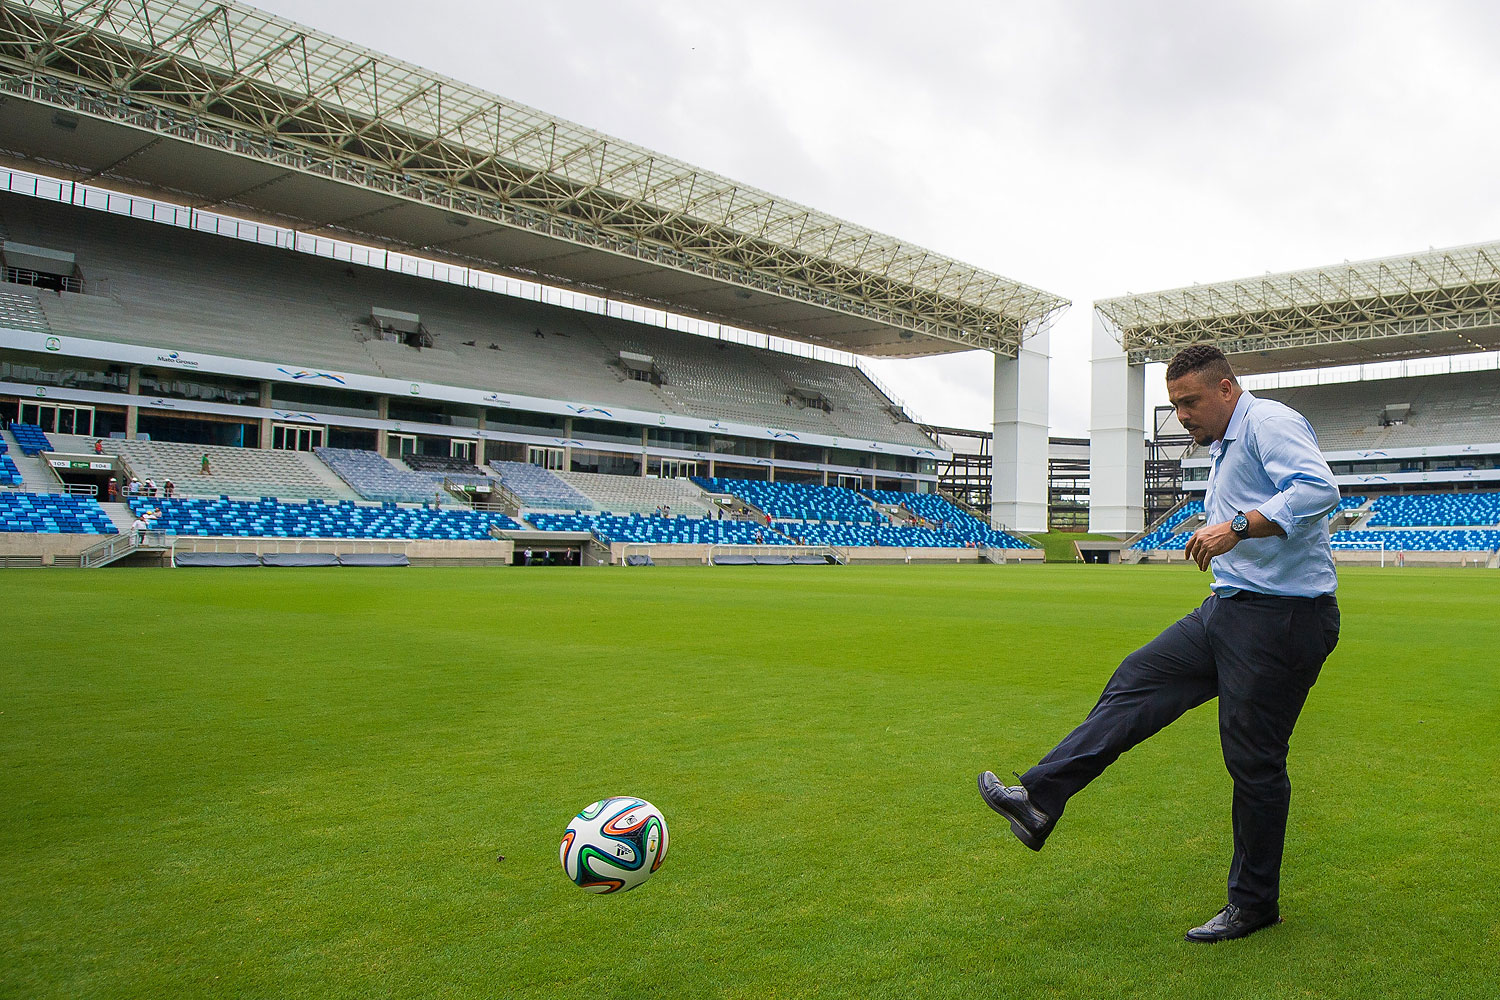 LOC Member Ronaldo Luis Nazario kicks the ball at Arena Pantanal during the 2014 FIFA World Cup Host City Tour on April 23, 2014 in Cuiaba, Brazil